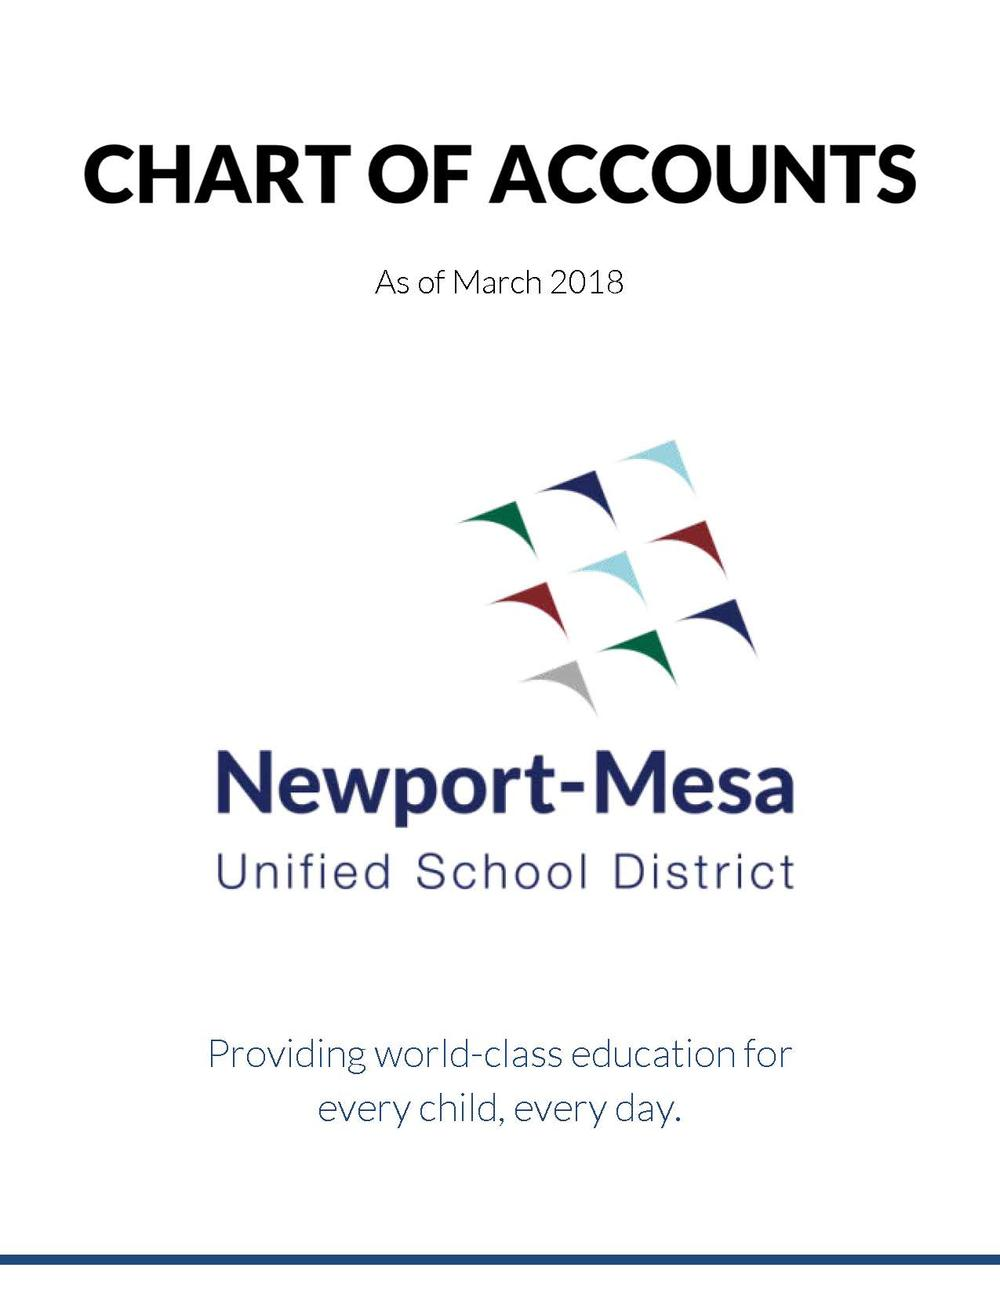 Cover Image - Chart of Accounts